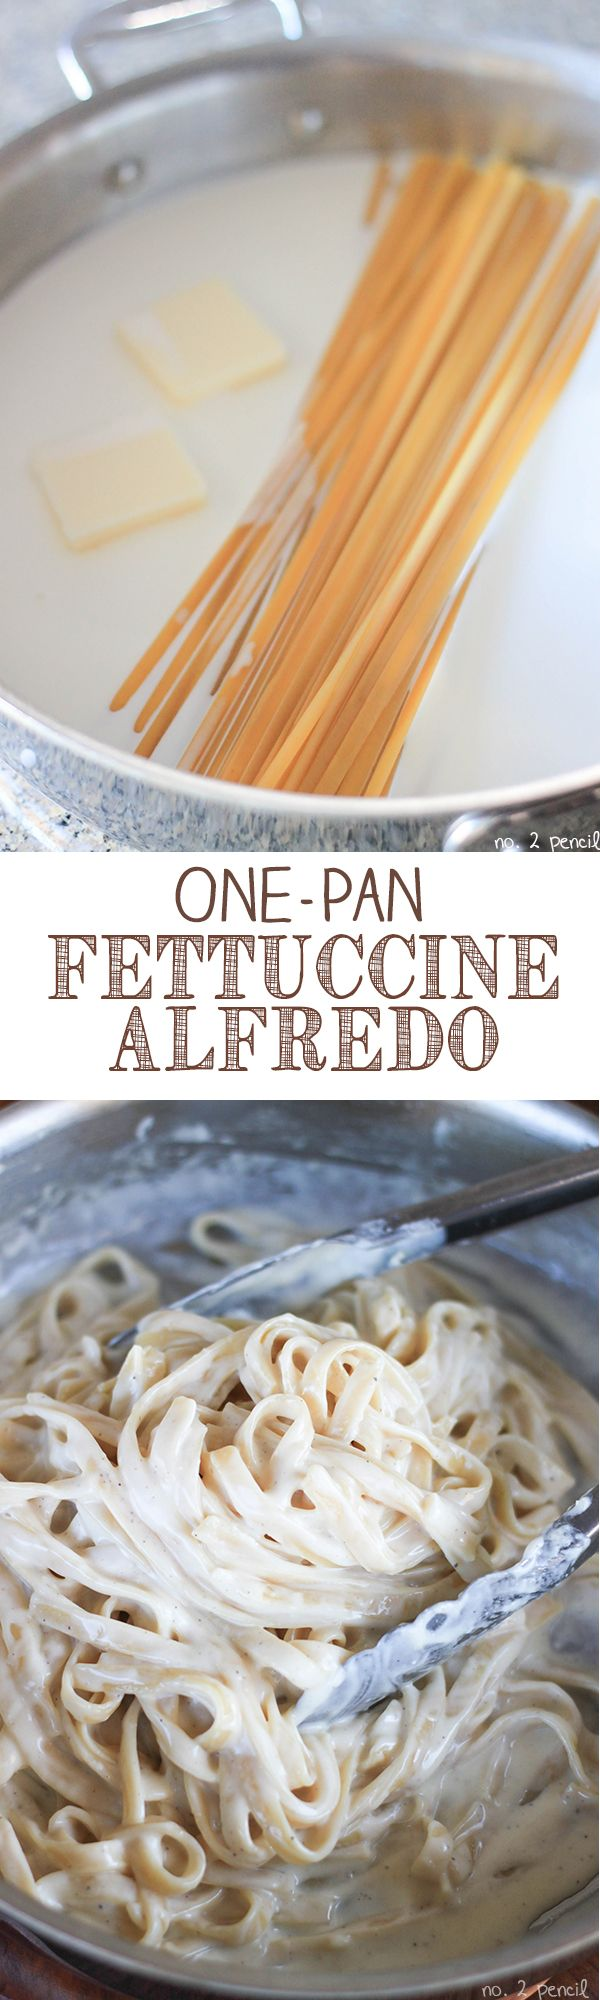 Easy One Pan Fettuccine Alfredo - even the pasta cooks in the same pan! This is super easy!! Makes just enough to feed 4-5 people. Delicious too.